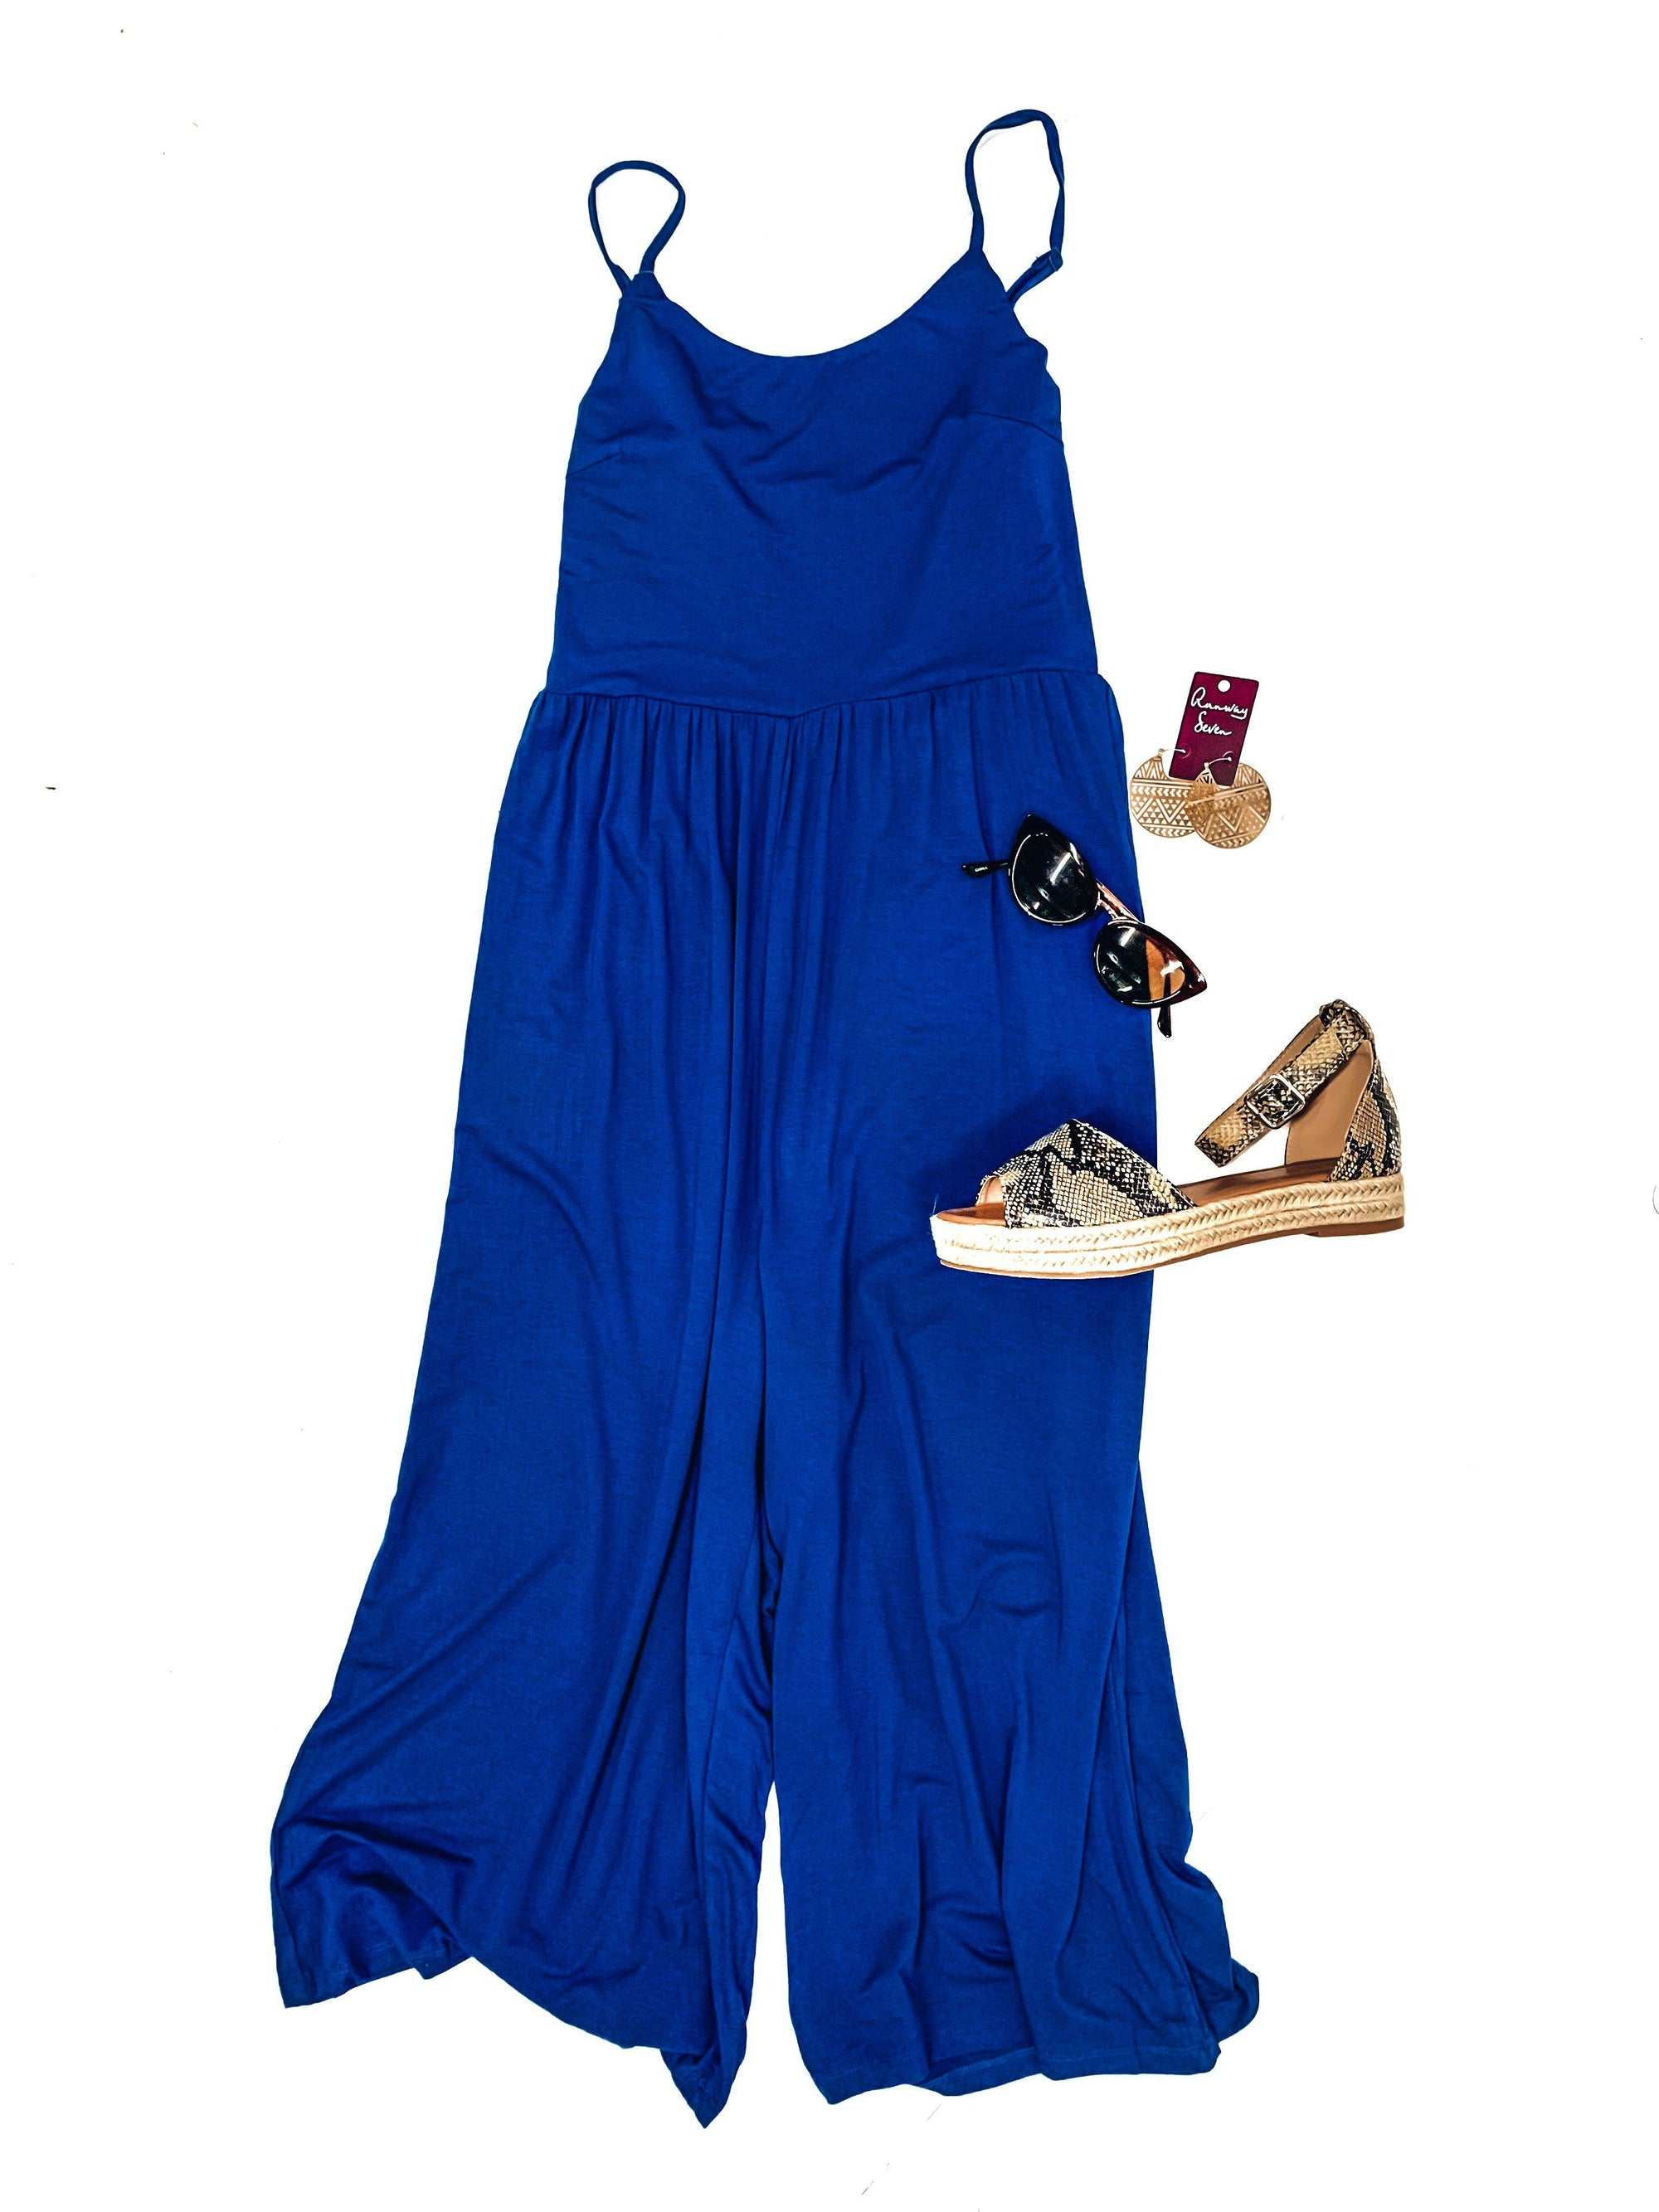 Travel Buddy Jumpsuit-Women's ROMPER-New Arrivals-Runway Seven - Women's Clothing Boutique